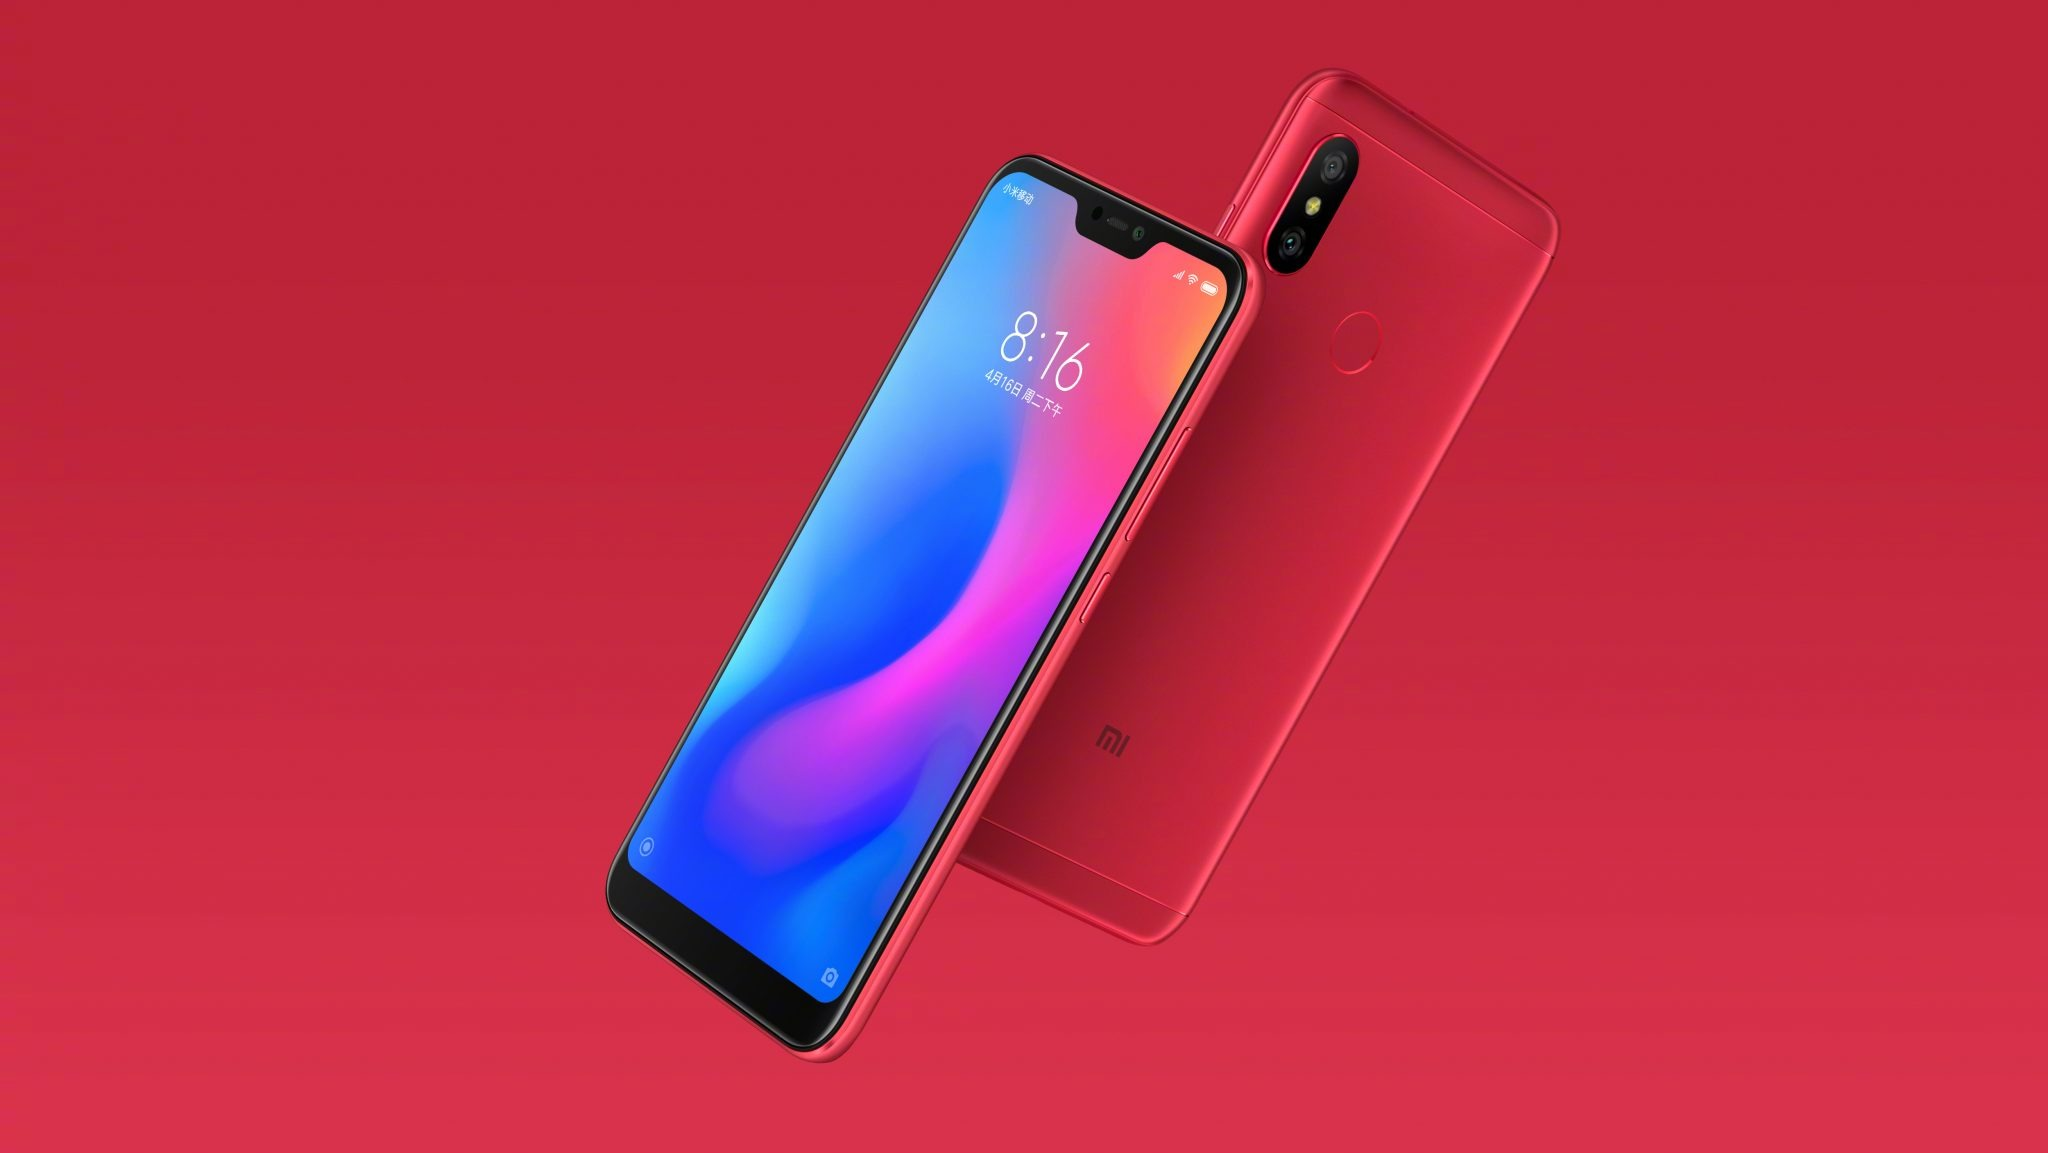 Xiaomi Redmi 6 trio launching in India soon as the teaser campaign begins